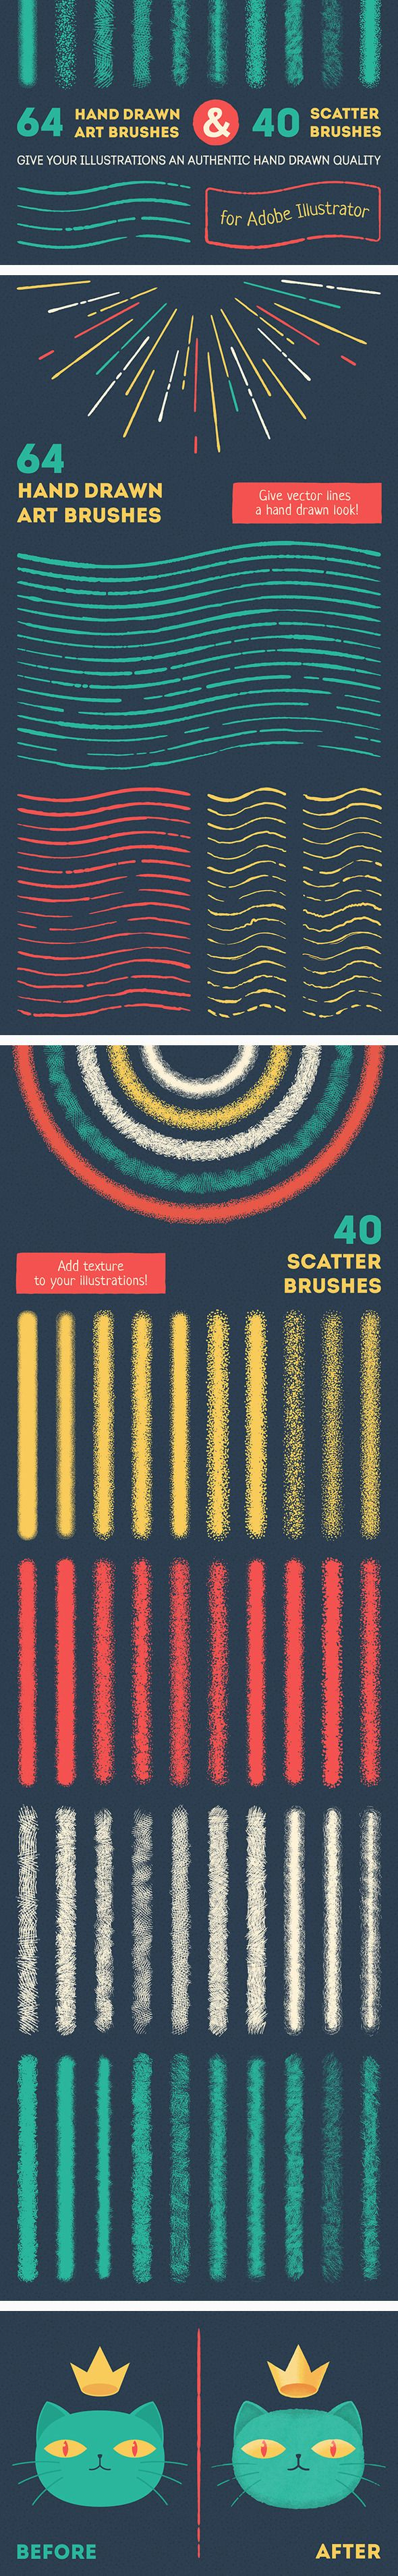 25 Best Ideas About Vector Brush On Pinterest Doodle